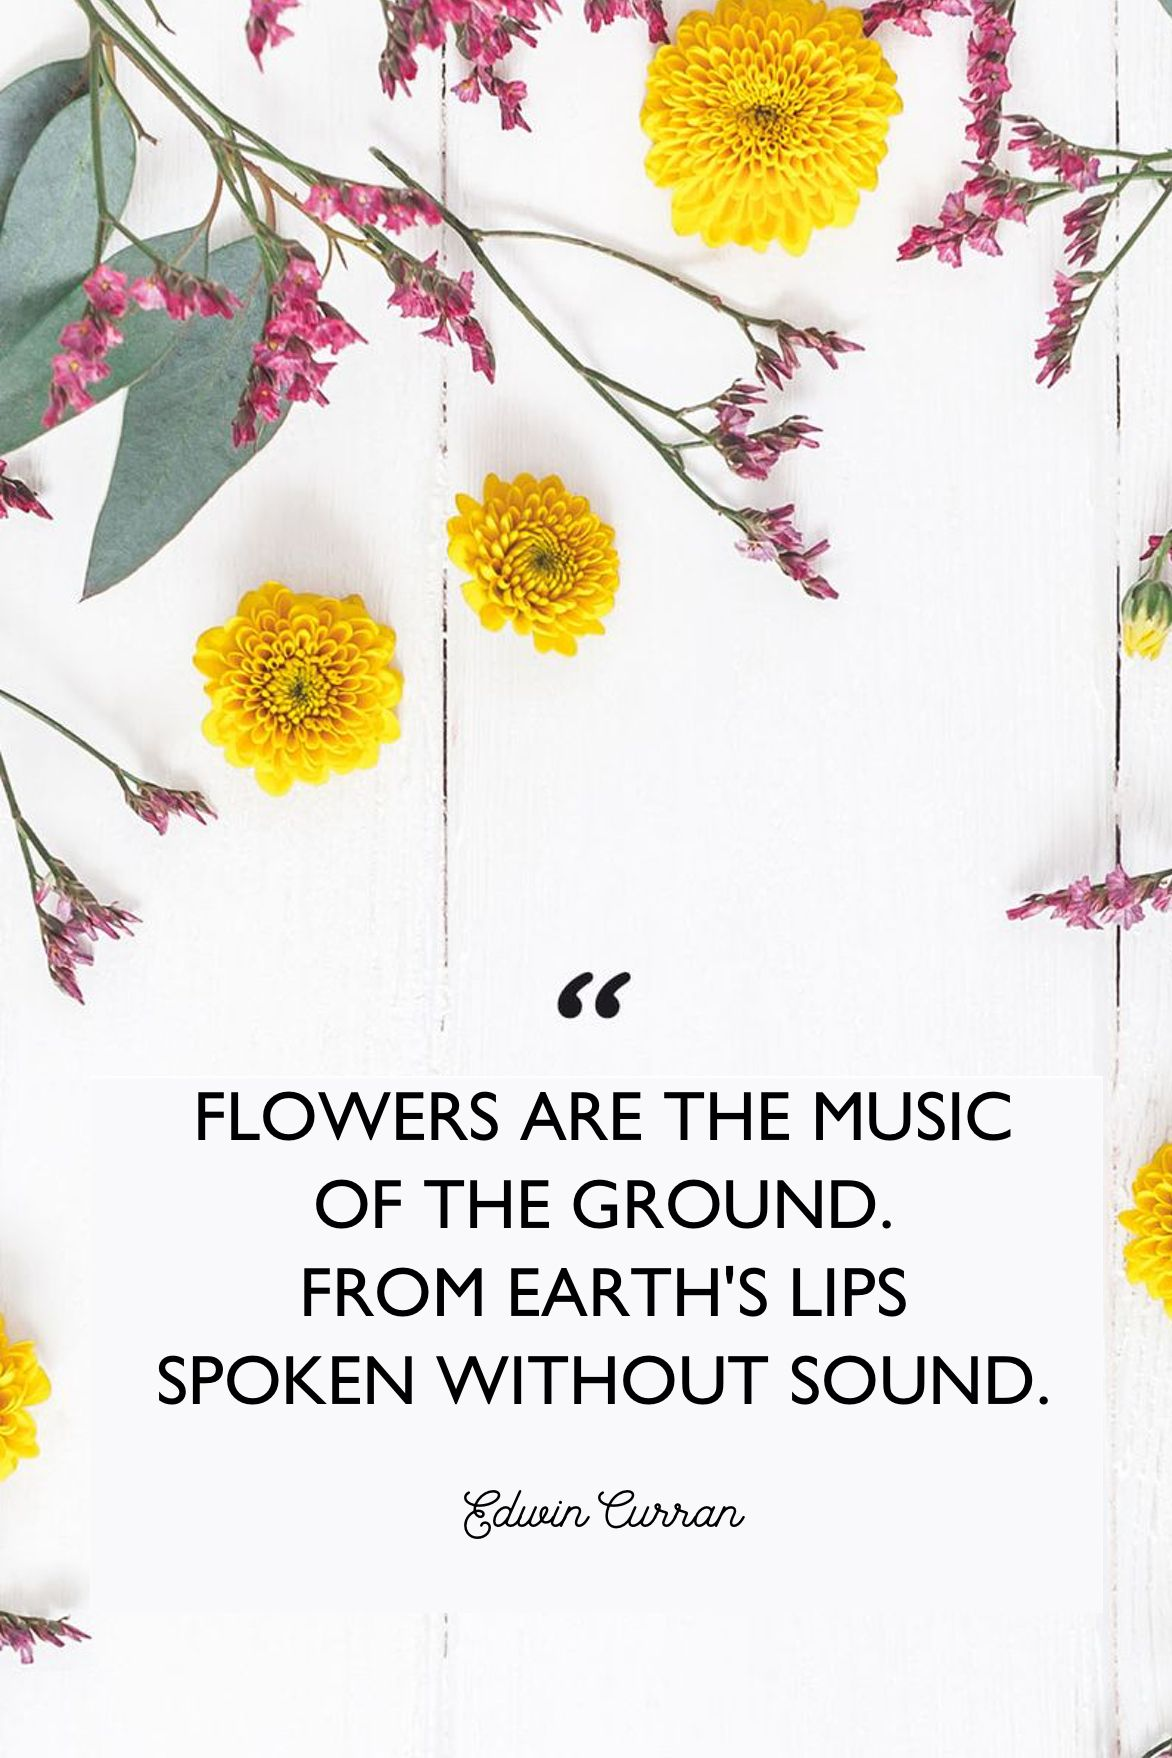 5 Inspirational Flower Quotes - Cute Flower Sayings About Life